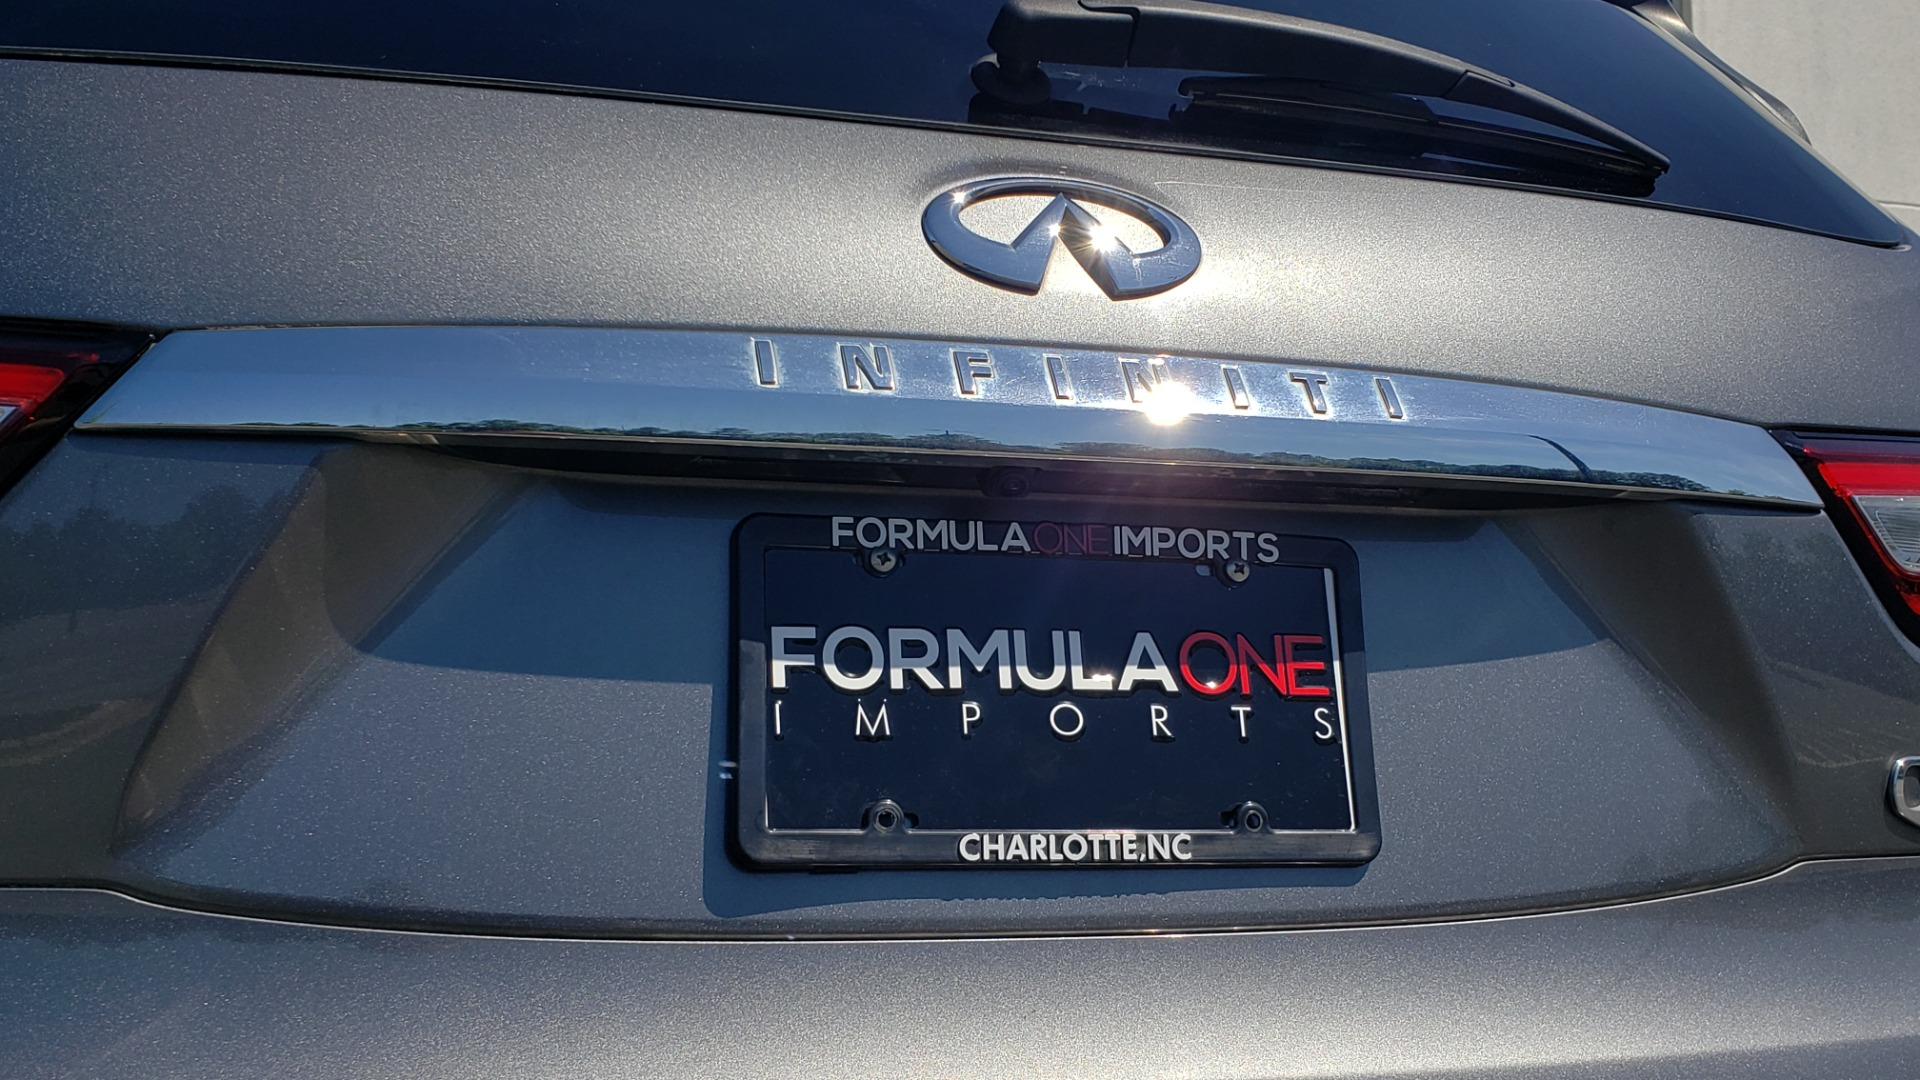 Used 2018 INFINITI QX60 3.5L V6 / FWD / CVT TRANS / NAV / SUNROOF / 3-ROWS / REARVIEW for sale $31,999 at Formula Imports in Charlotte NC 28227 36